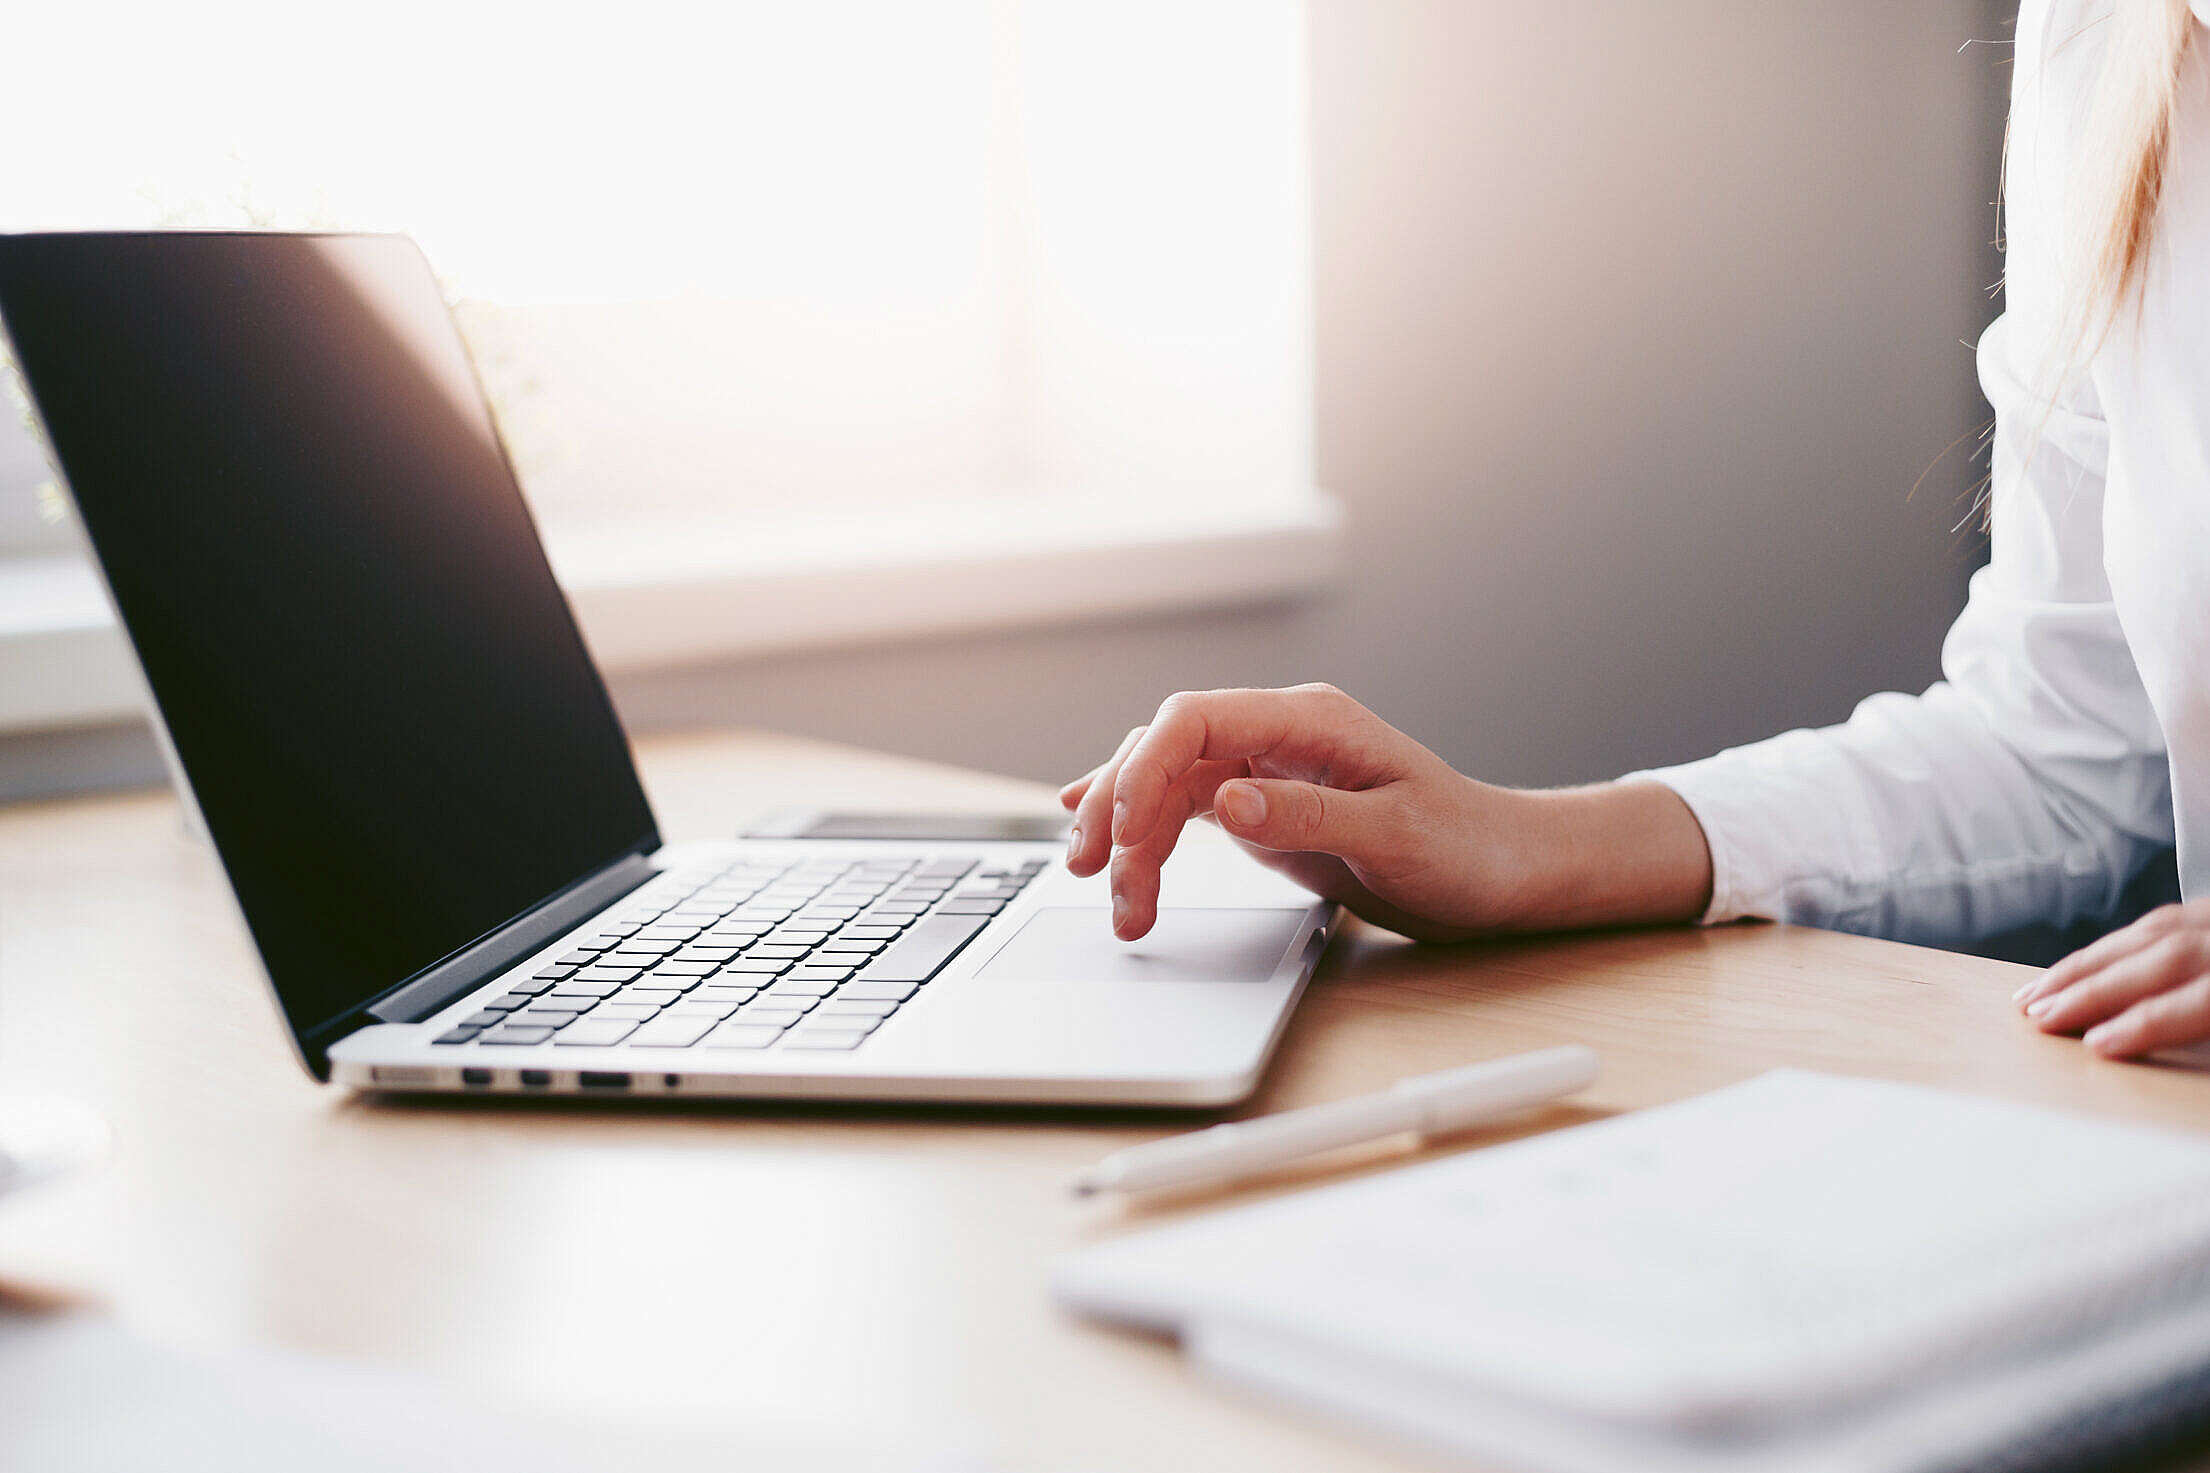 Business Woman Working on Laptop in Her Office Free Stock Photo